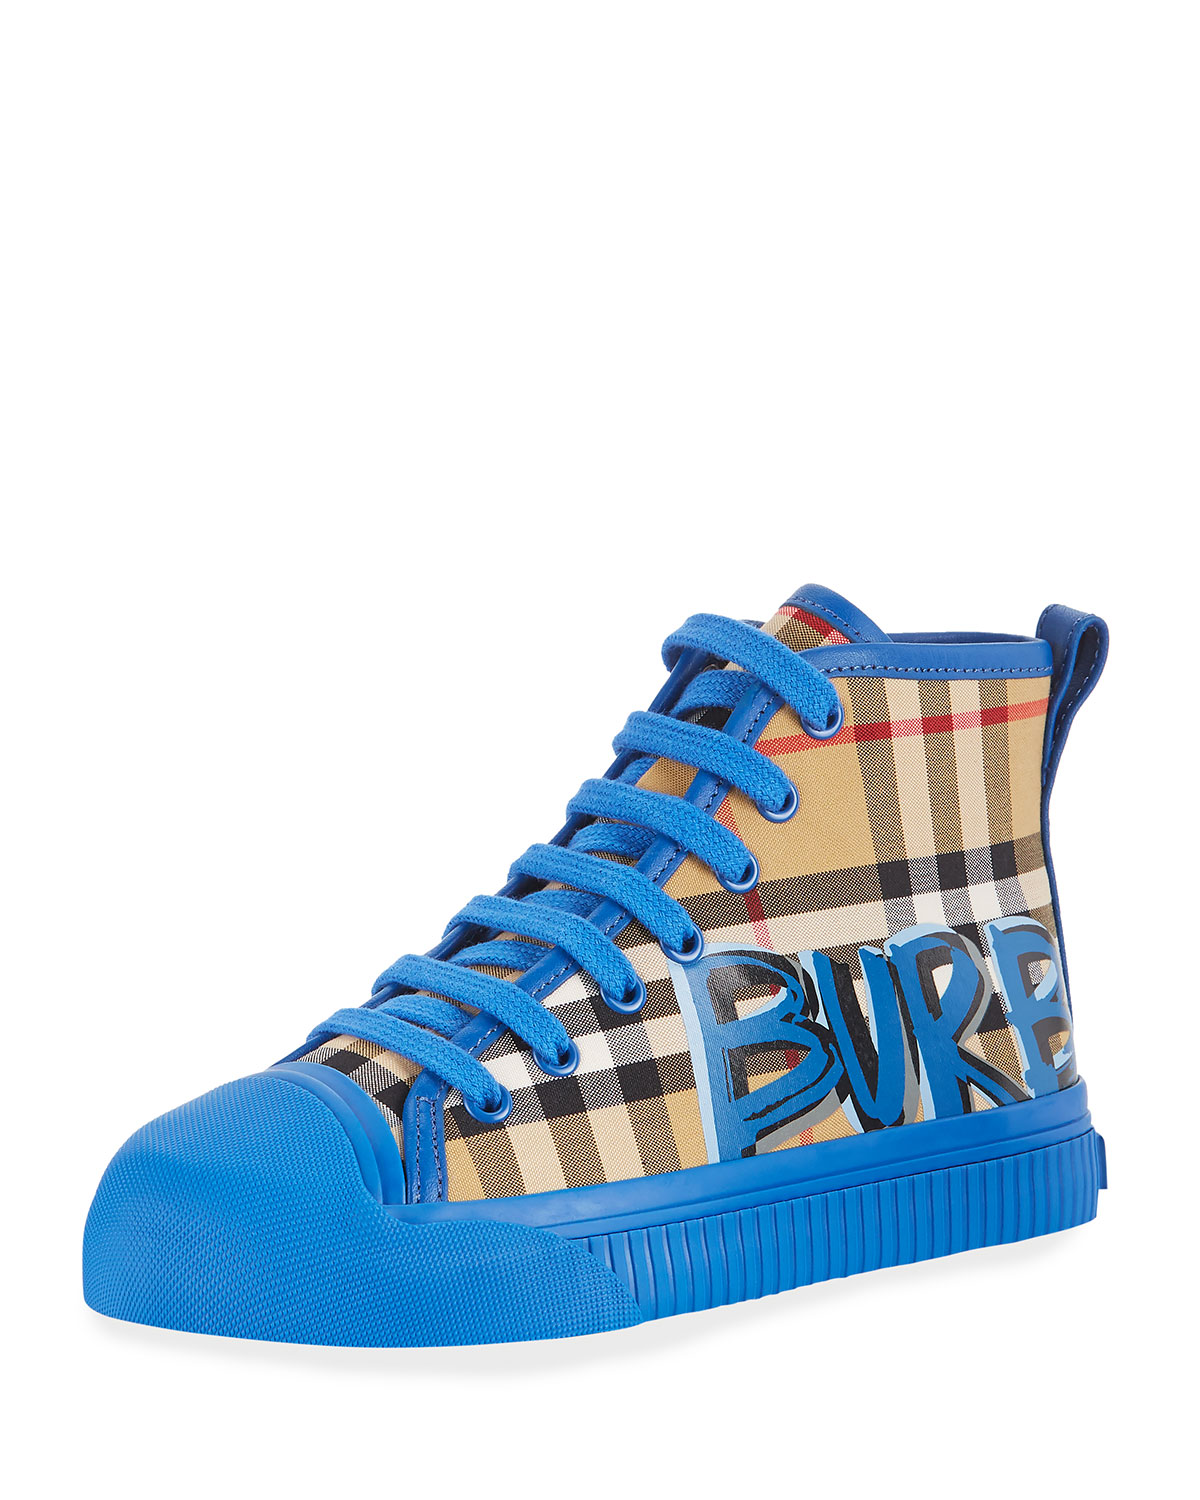 Kingly GraffitiLogo Check HighTop Sneaker ToddlerKids